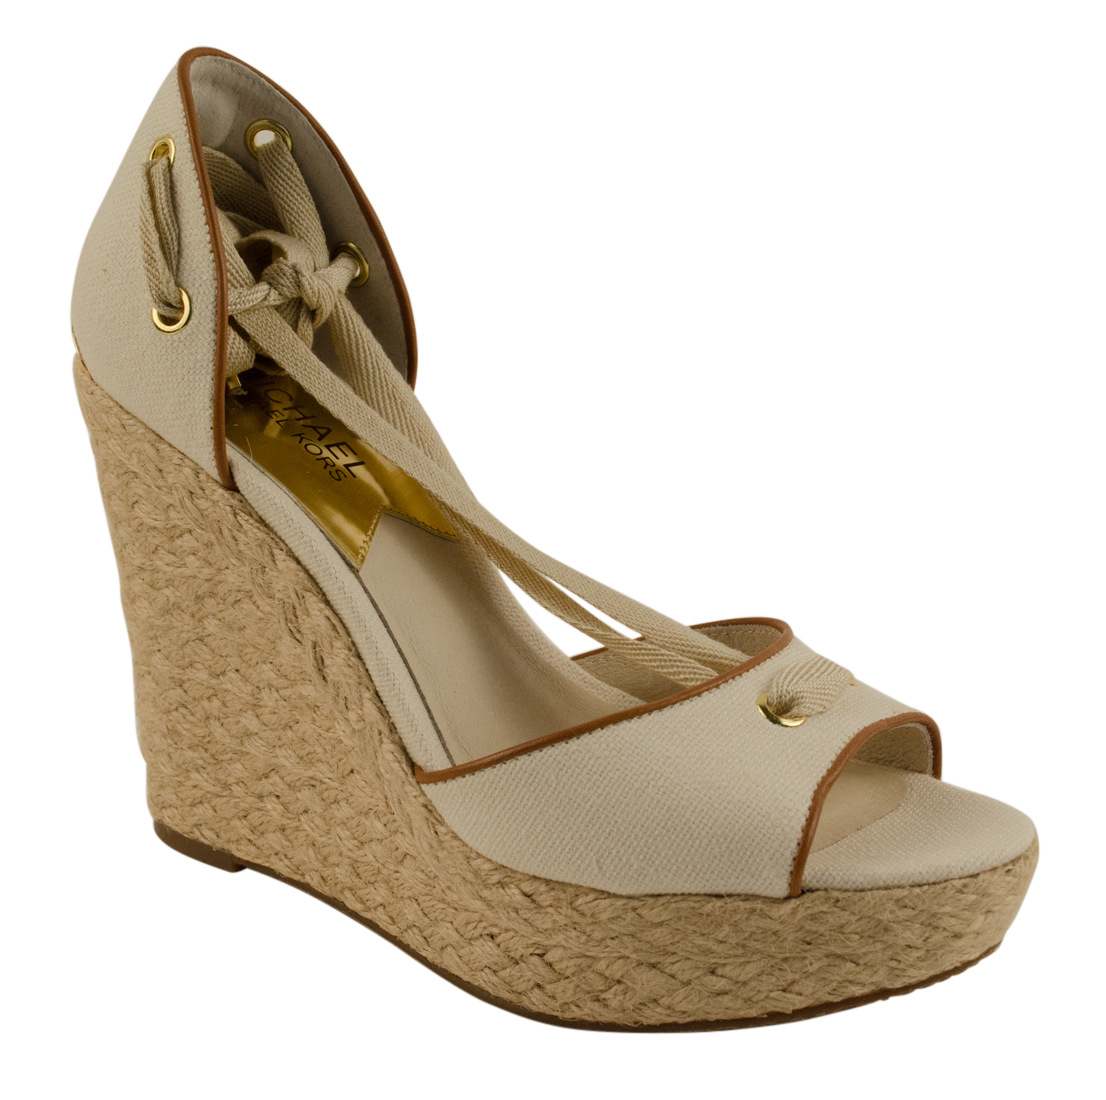 Ebay Wedge Shoes Size